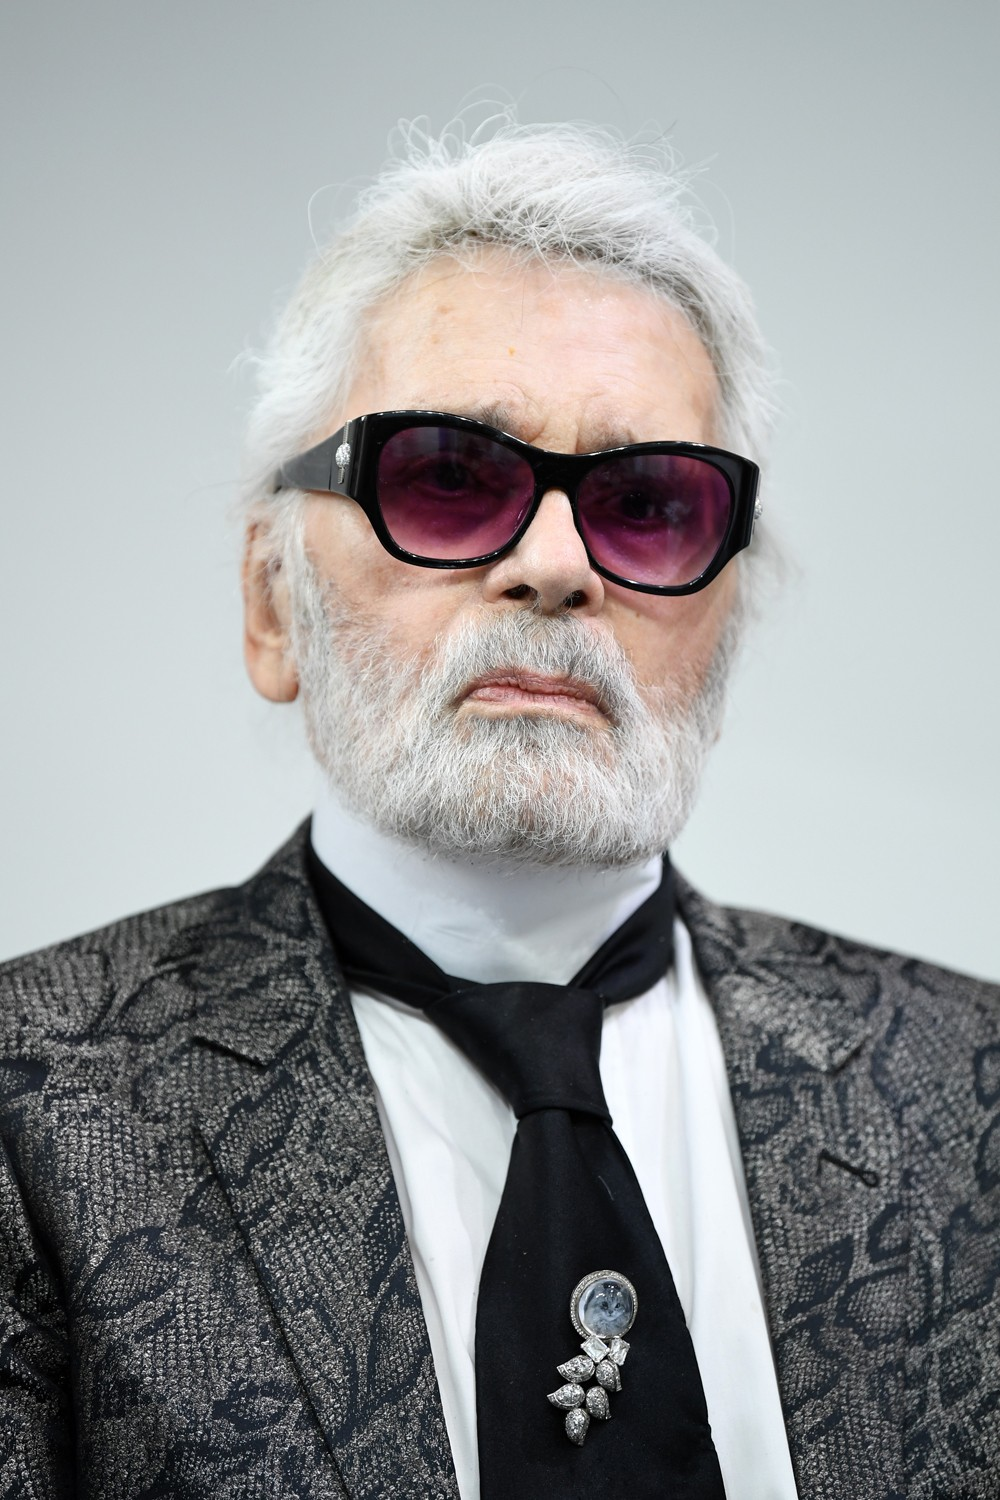 PARIS, FRANCE - JUNE 06: Karl Lagerfeld attends the LVMH Prize 2018 Edition at Fondation Louis Vuitton on June 6, 2018 in Paris, France.  (Photo by Pascal Le Segretain/Getty Images) (Foto: Getty Images)